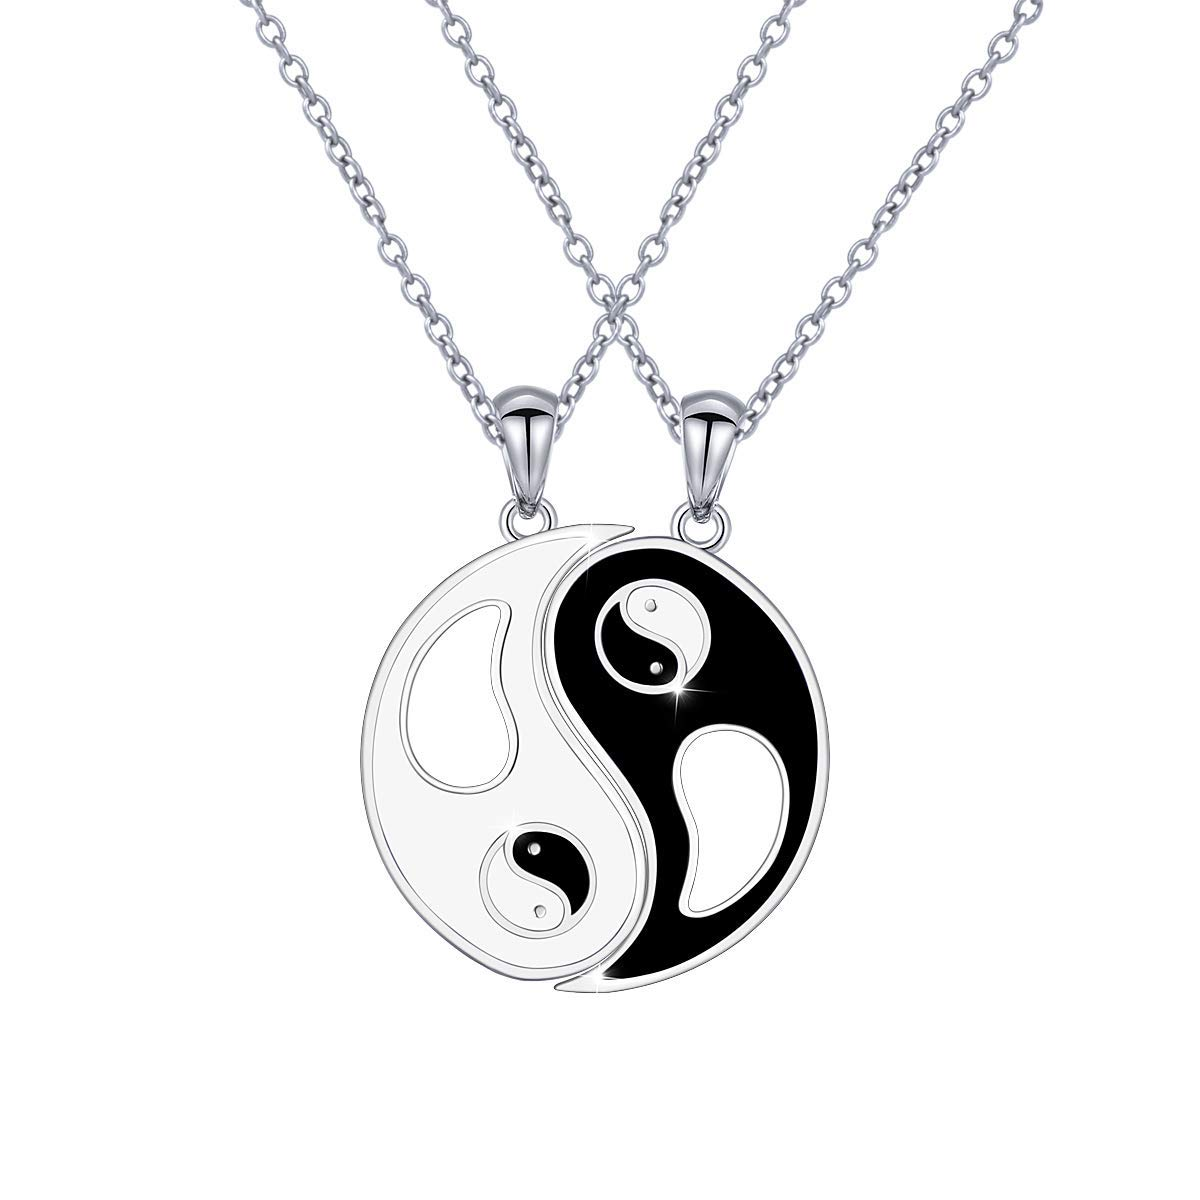 f12e7f9ff Get Quotations · S925 Sterling Silver Best Friend Necklaces Heart 2 Piece  Gifts Women Teen Girls Friendship BBF Pendant